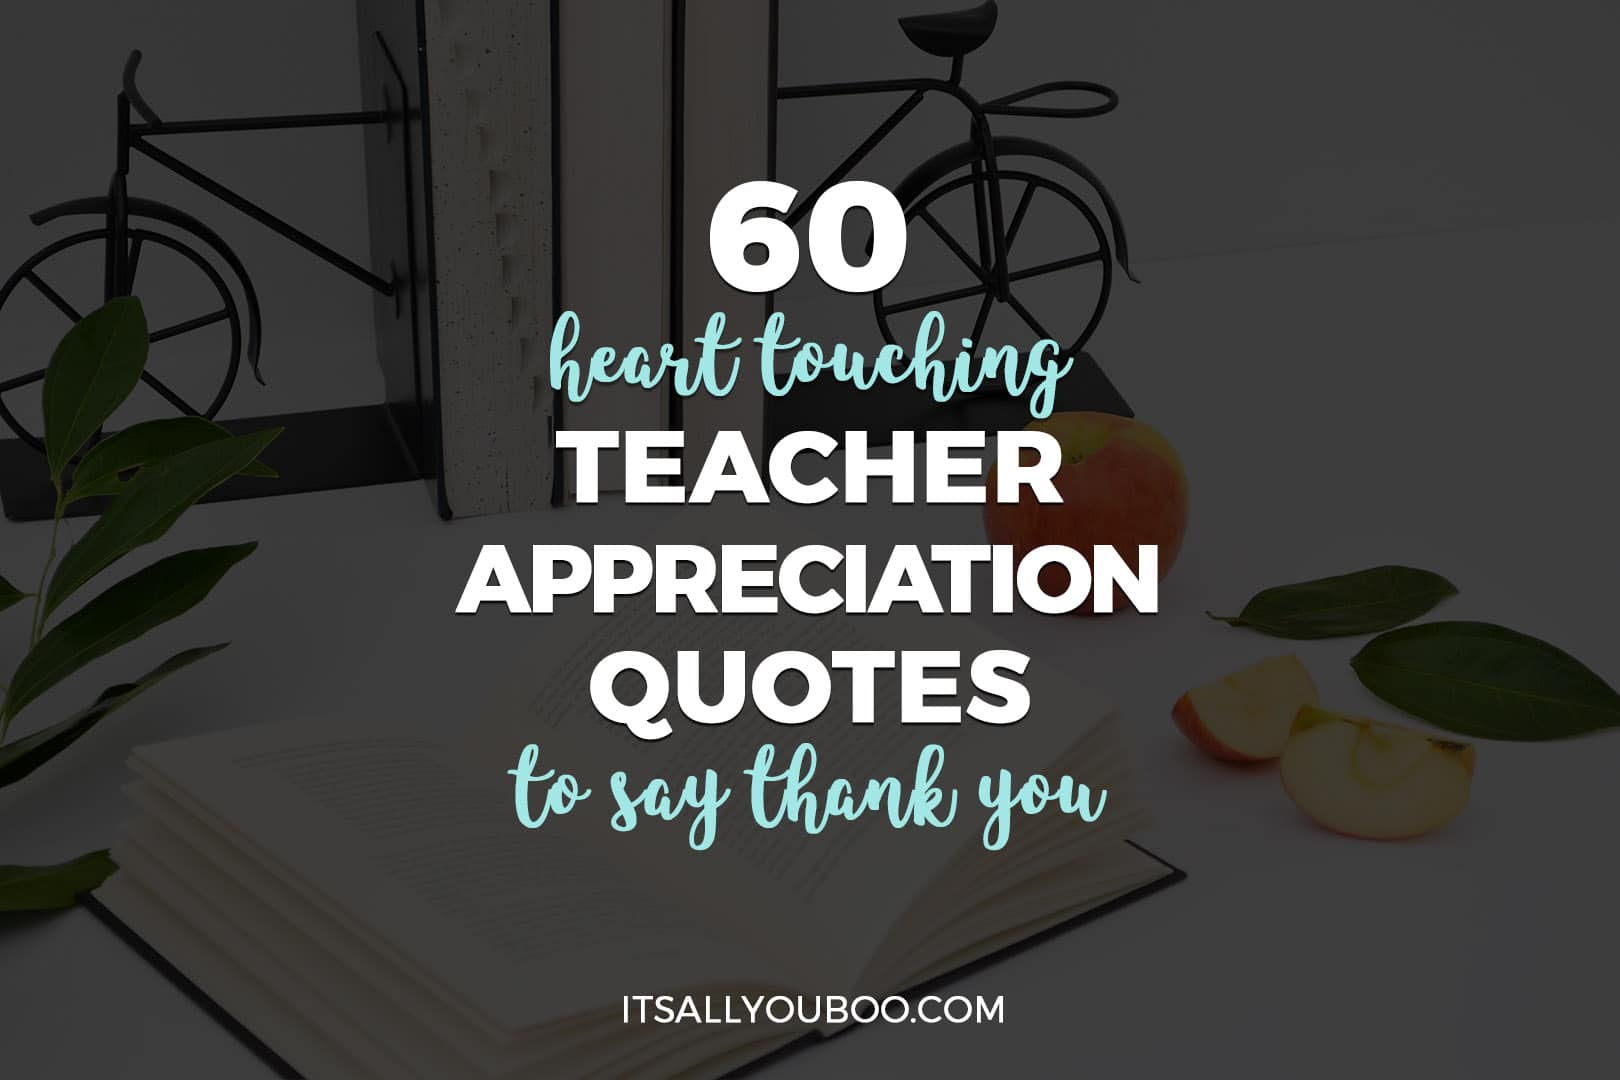 60 Heart Touching Teacher Appreciation Quotes to Say Thank You